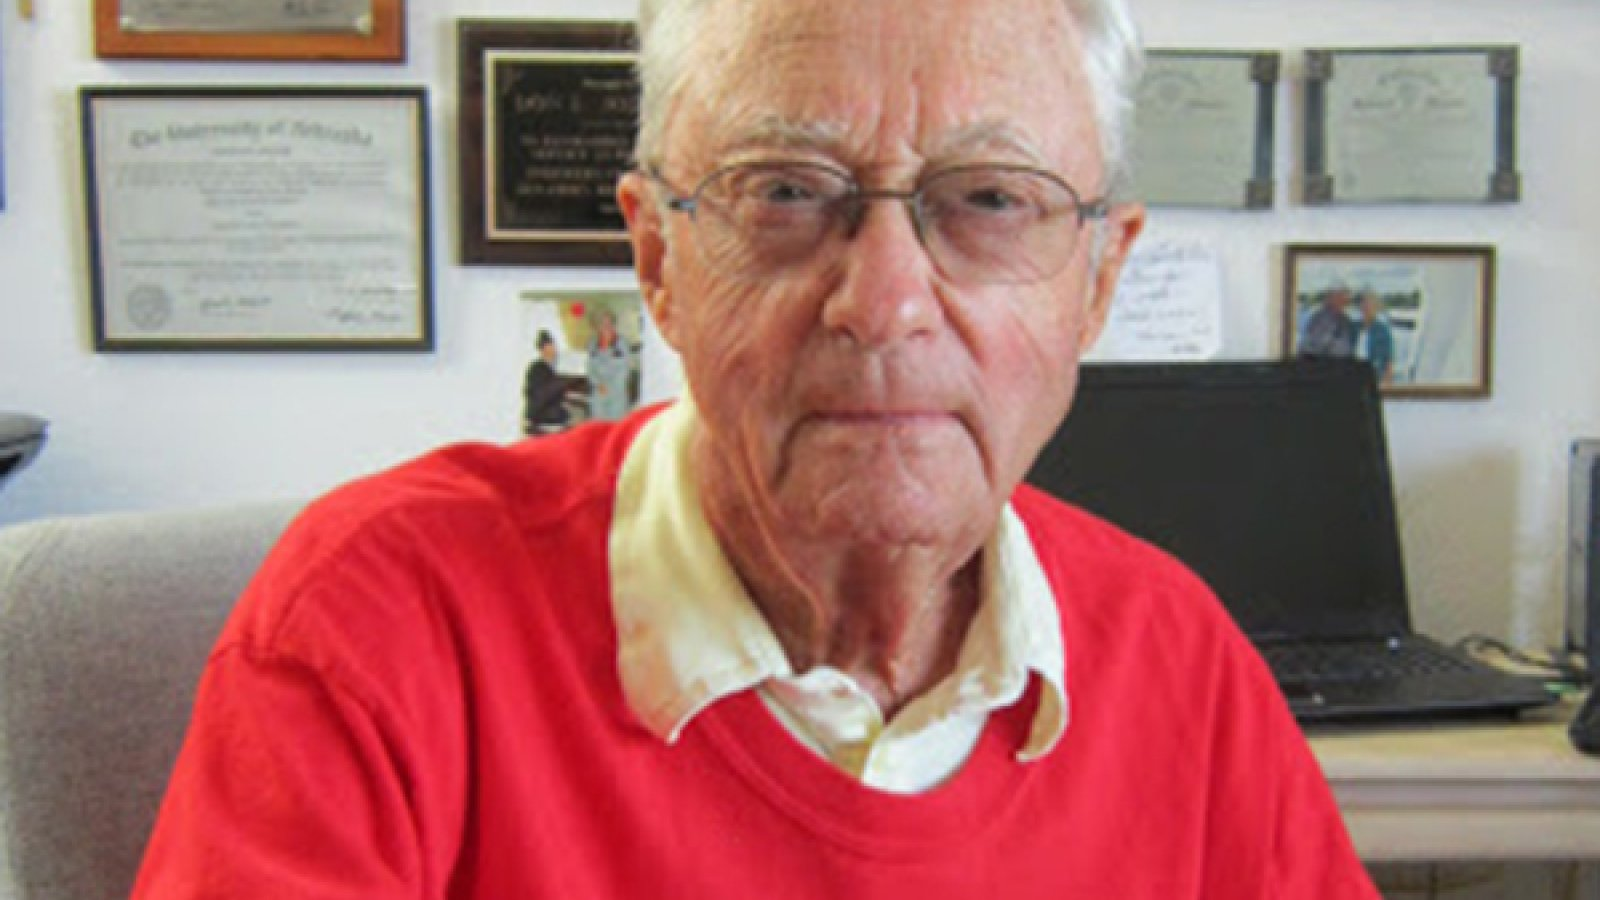 Don Johnson, professor emeritus of mechanical and materials engineering, received a University of Nebraska-Lincoln Emeriti and Retirees Association research award for his work on the USS Arizona, which was sunk during the raid on Pearl Harbor in 1941.